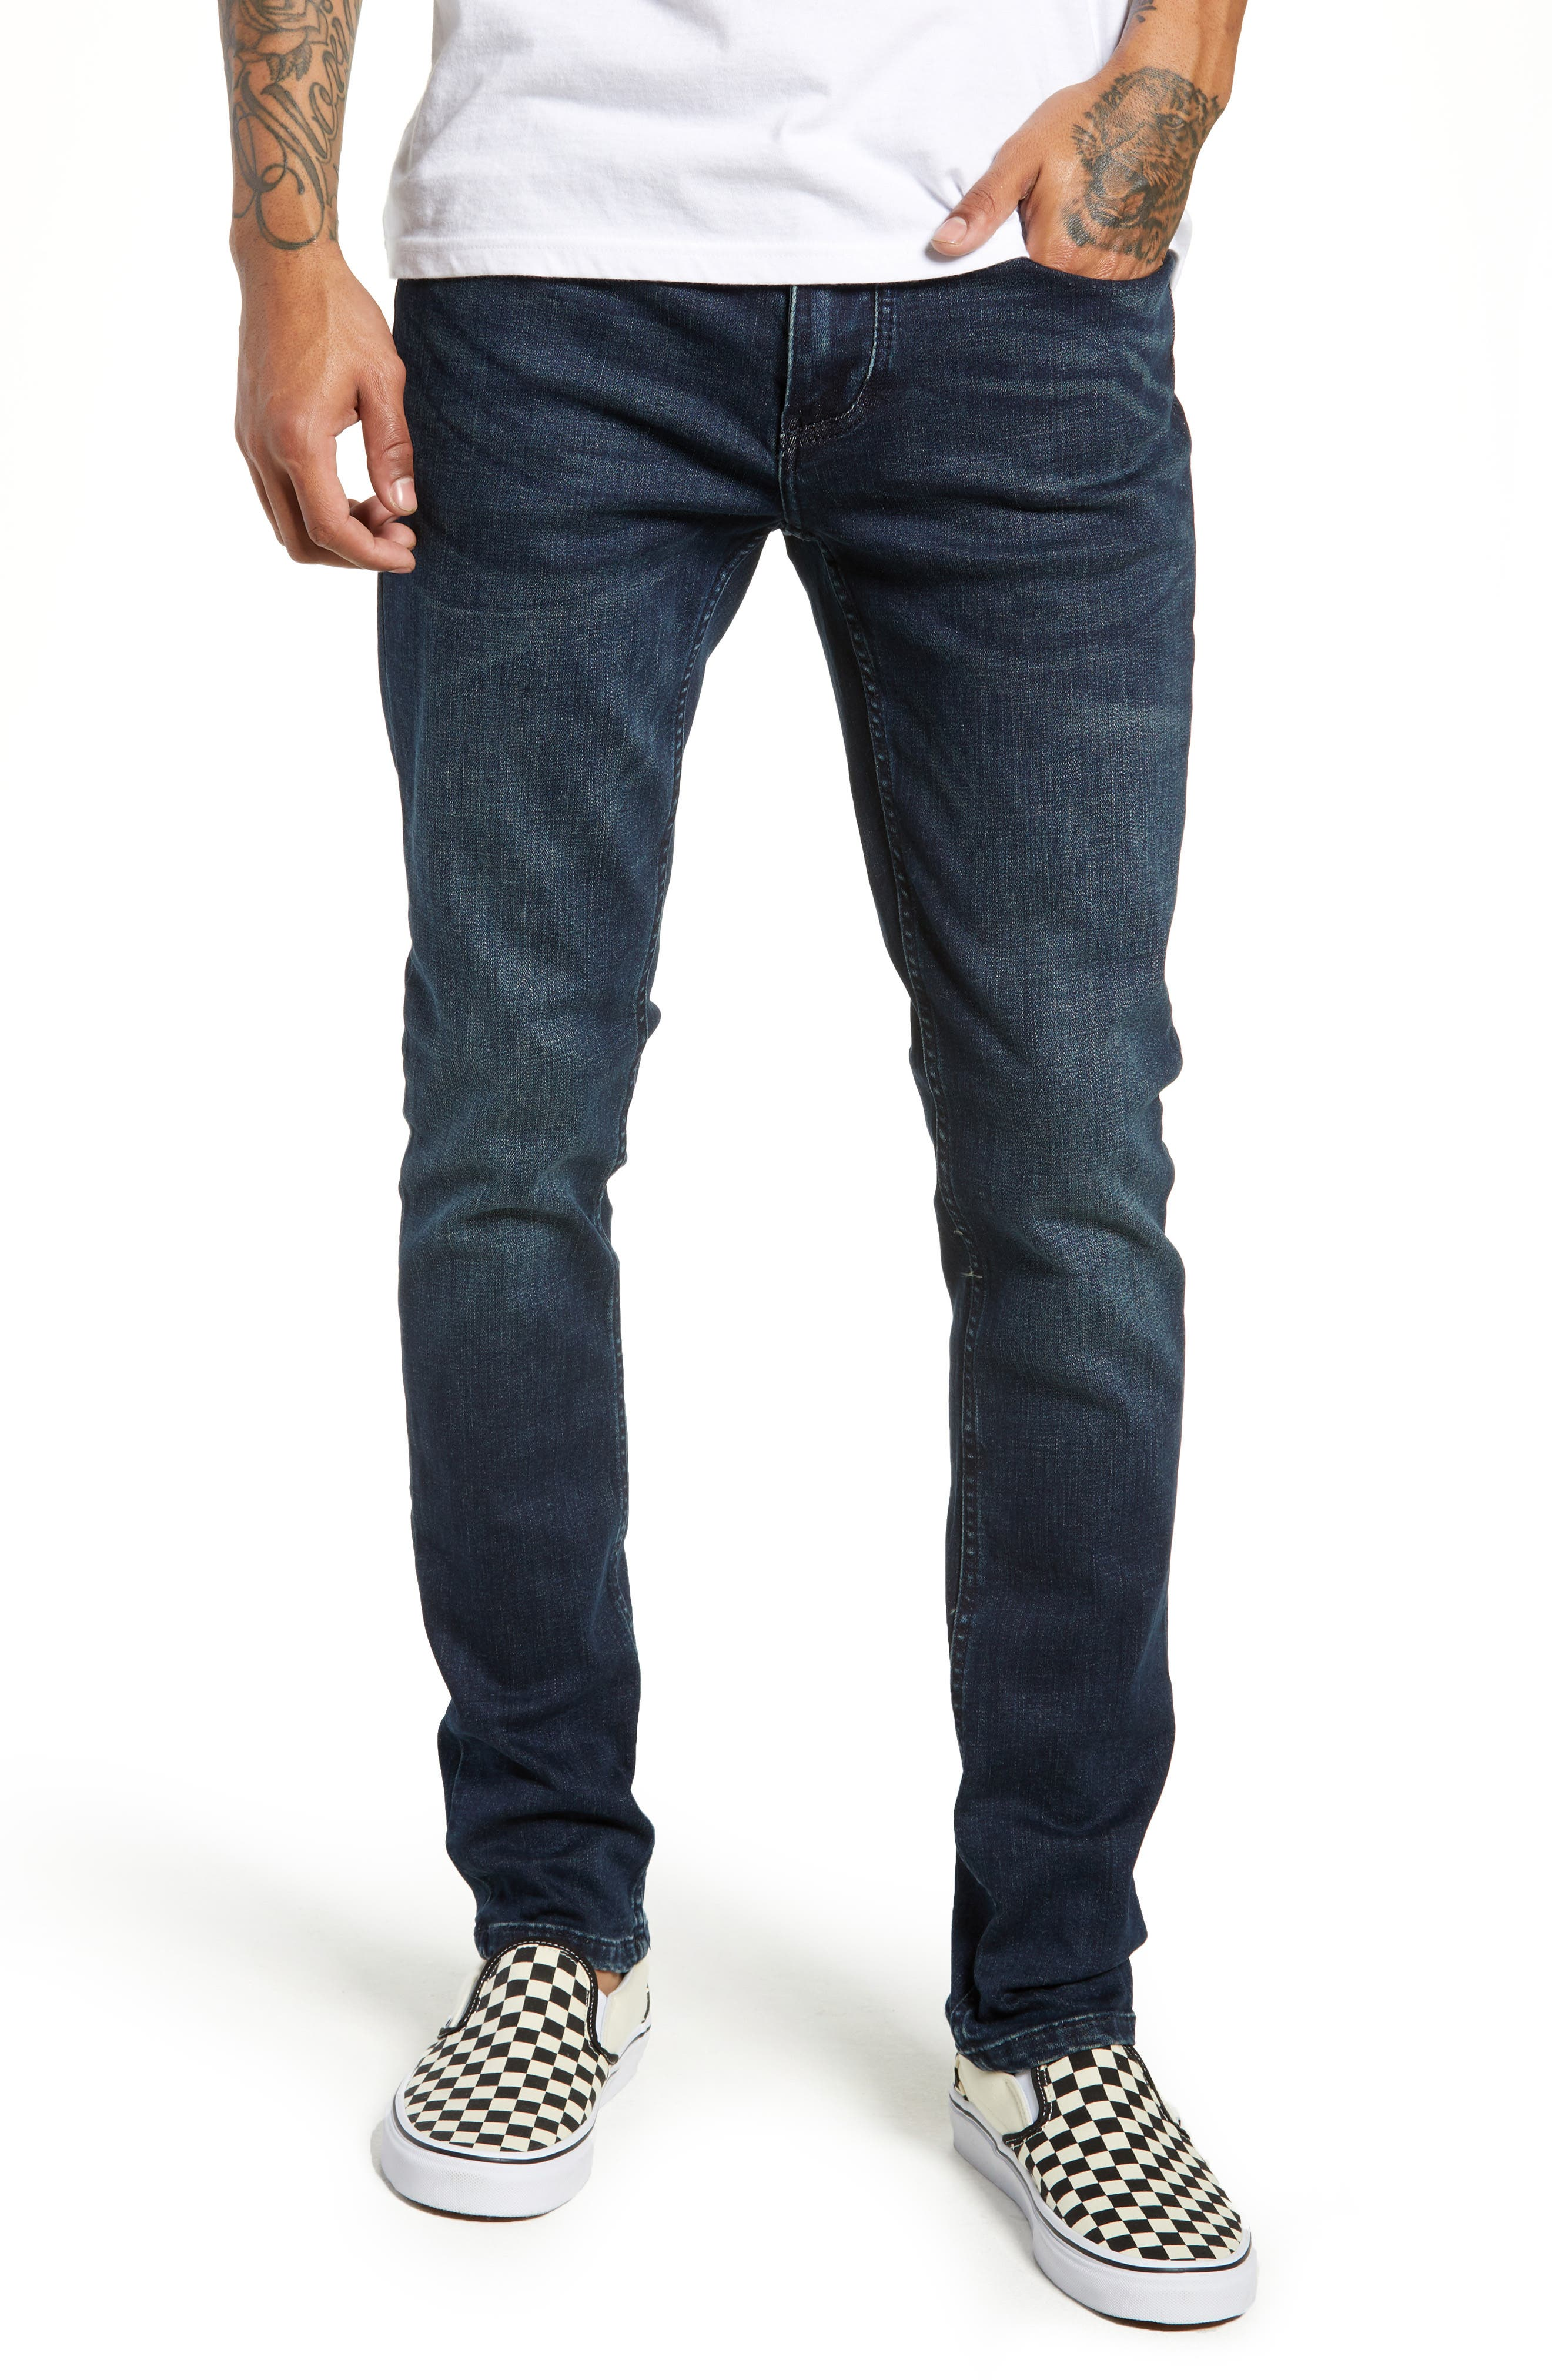 Horatio Skinny Fit Jeans,                             Main thumbnail 1, color,                             425